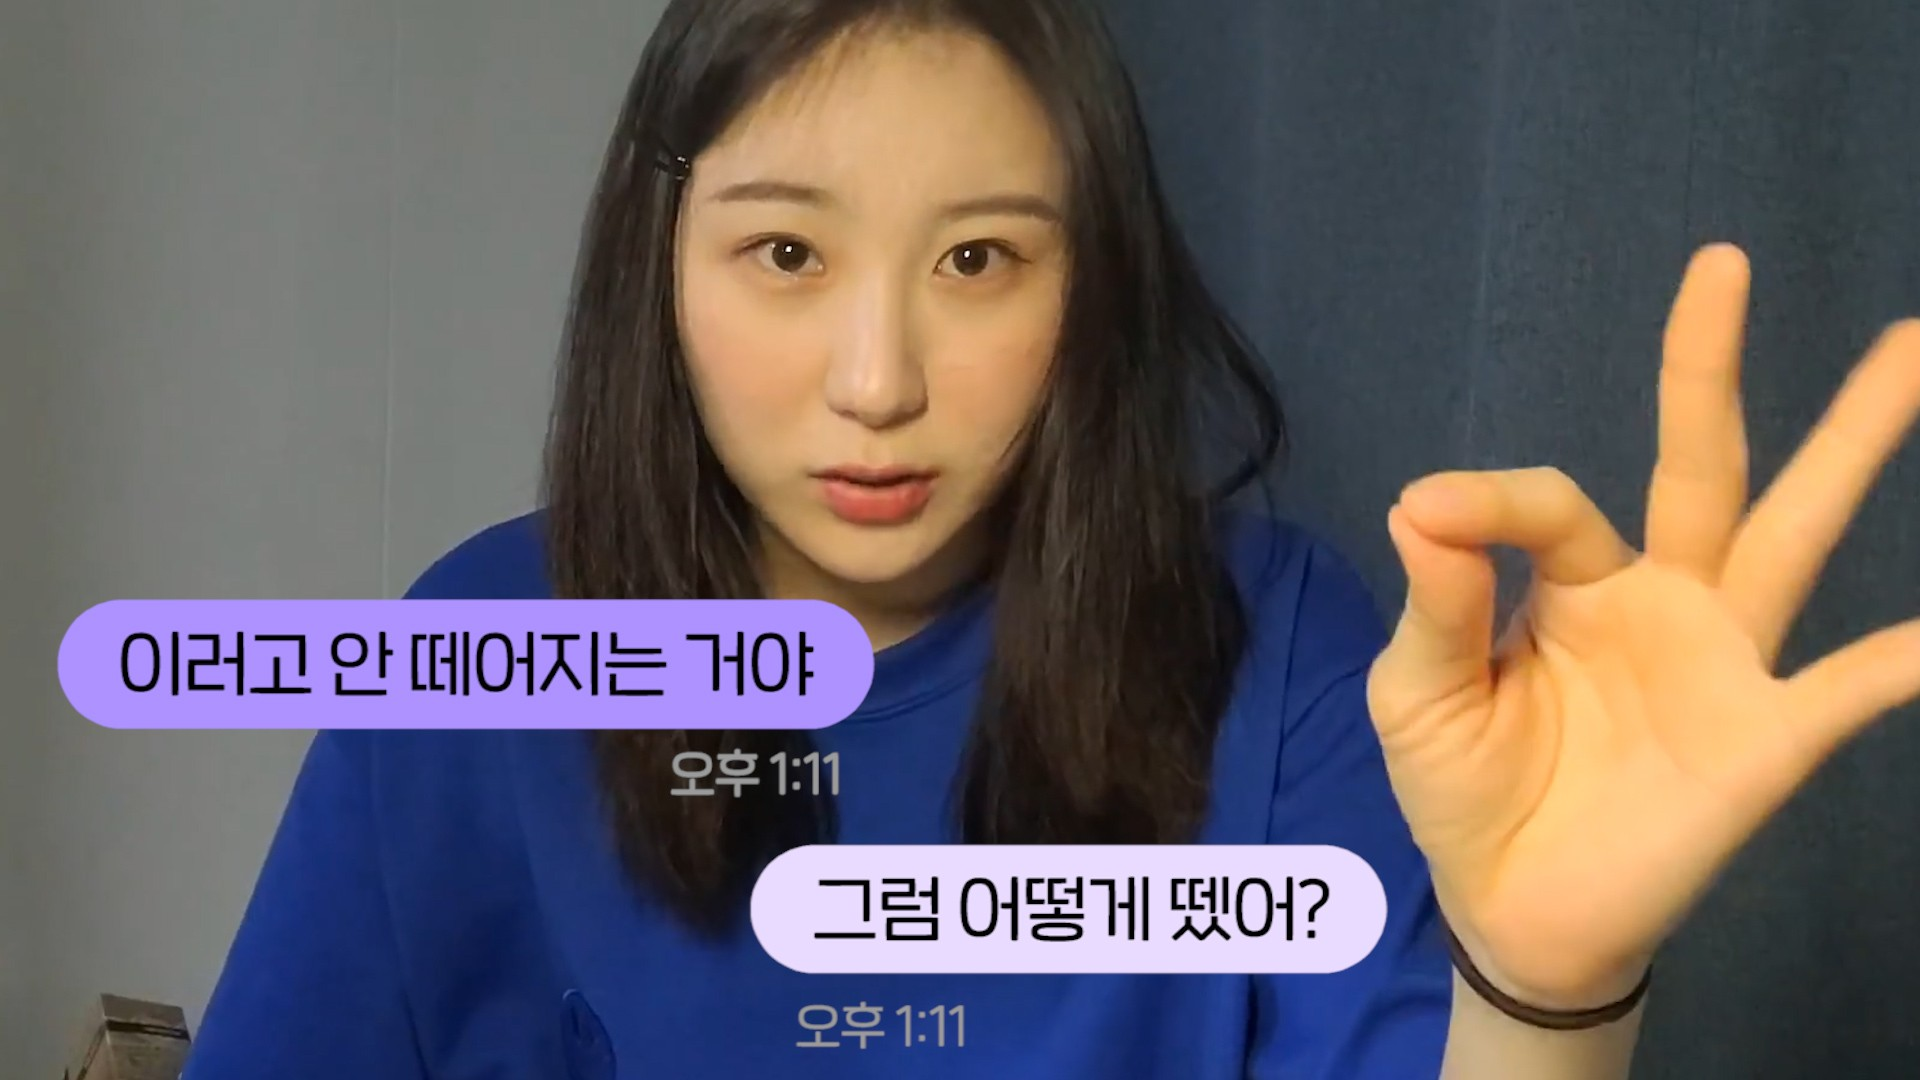 [IZ*ONE] 엄지 검지가 N극 S극이라도 오케이라구요❣️ (CHAE YEON talking about a episode with CHAE RYEONG)